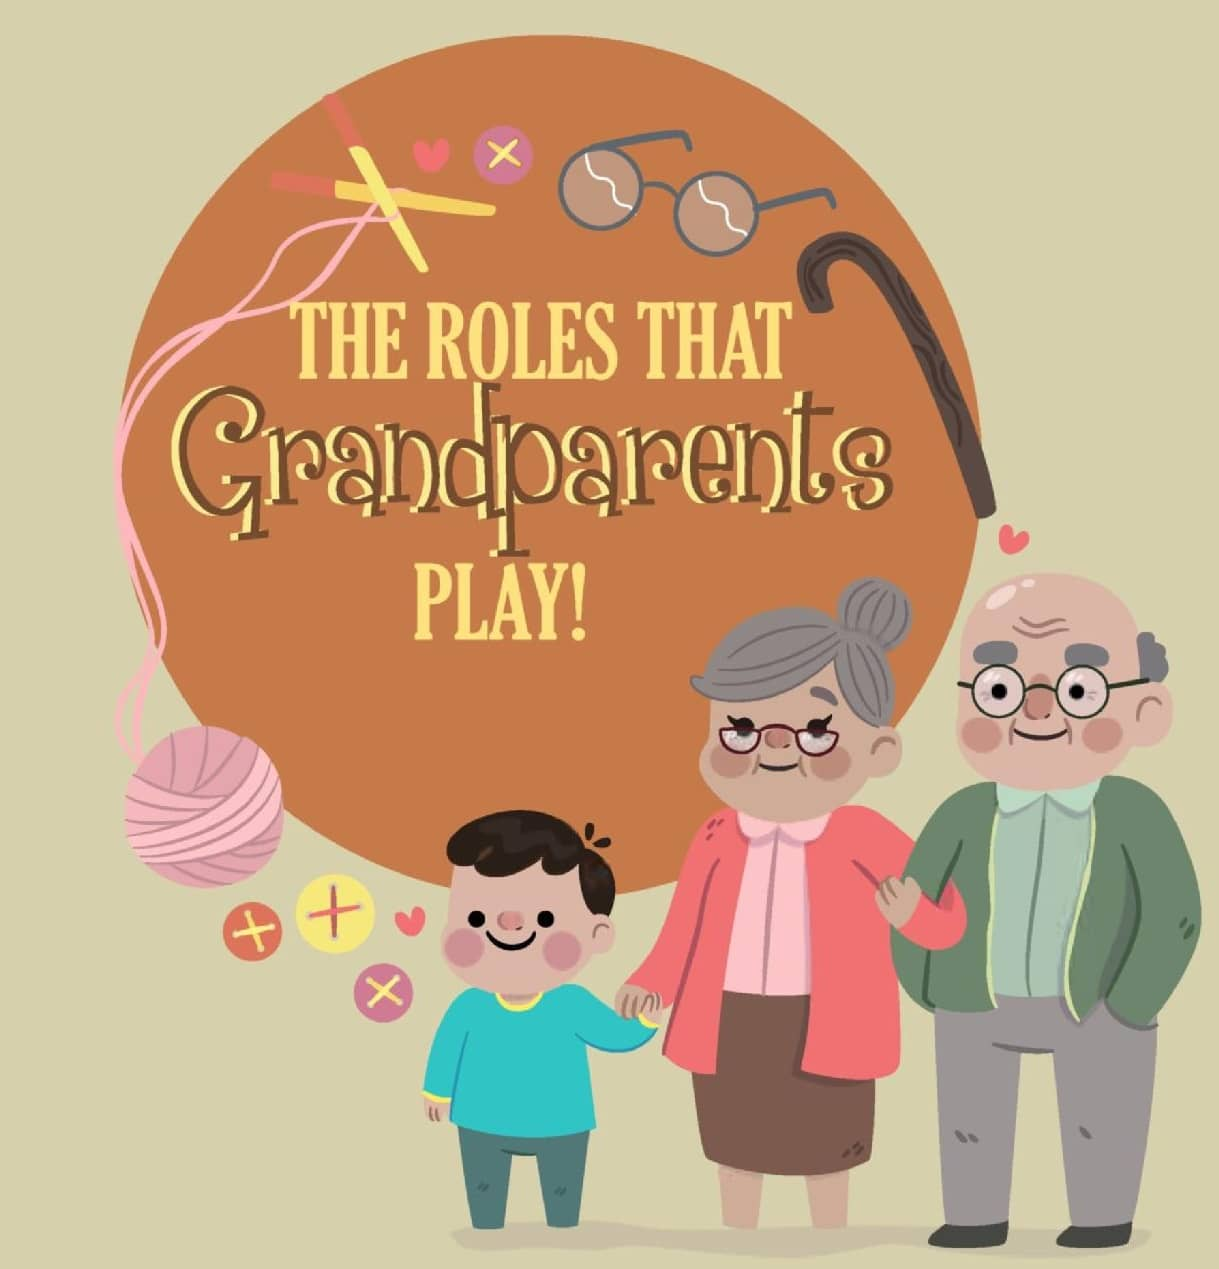 The Roles That Grandparents Play!